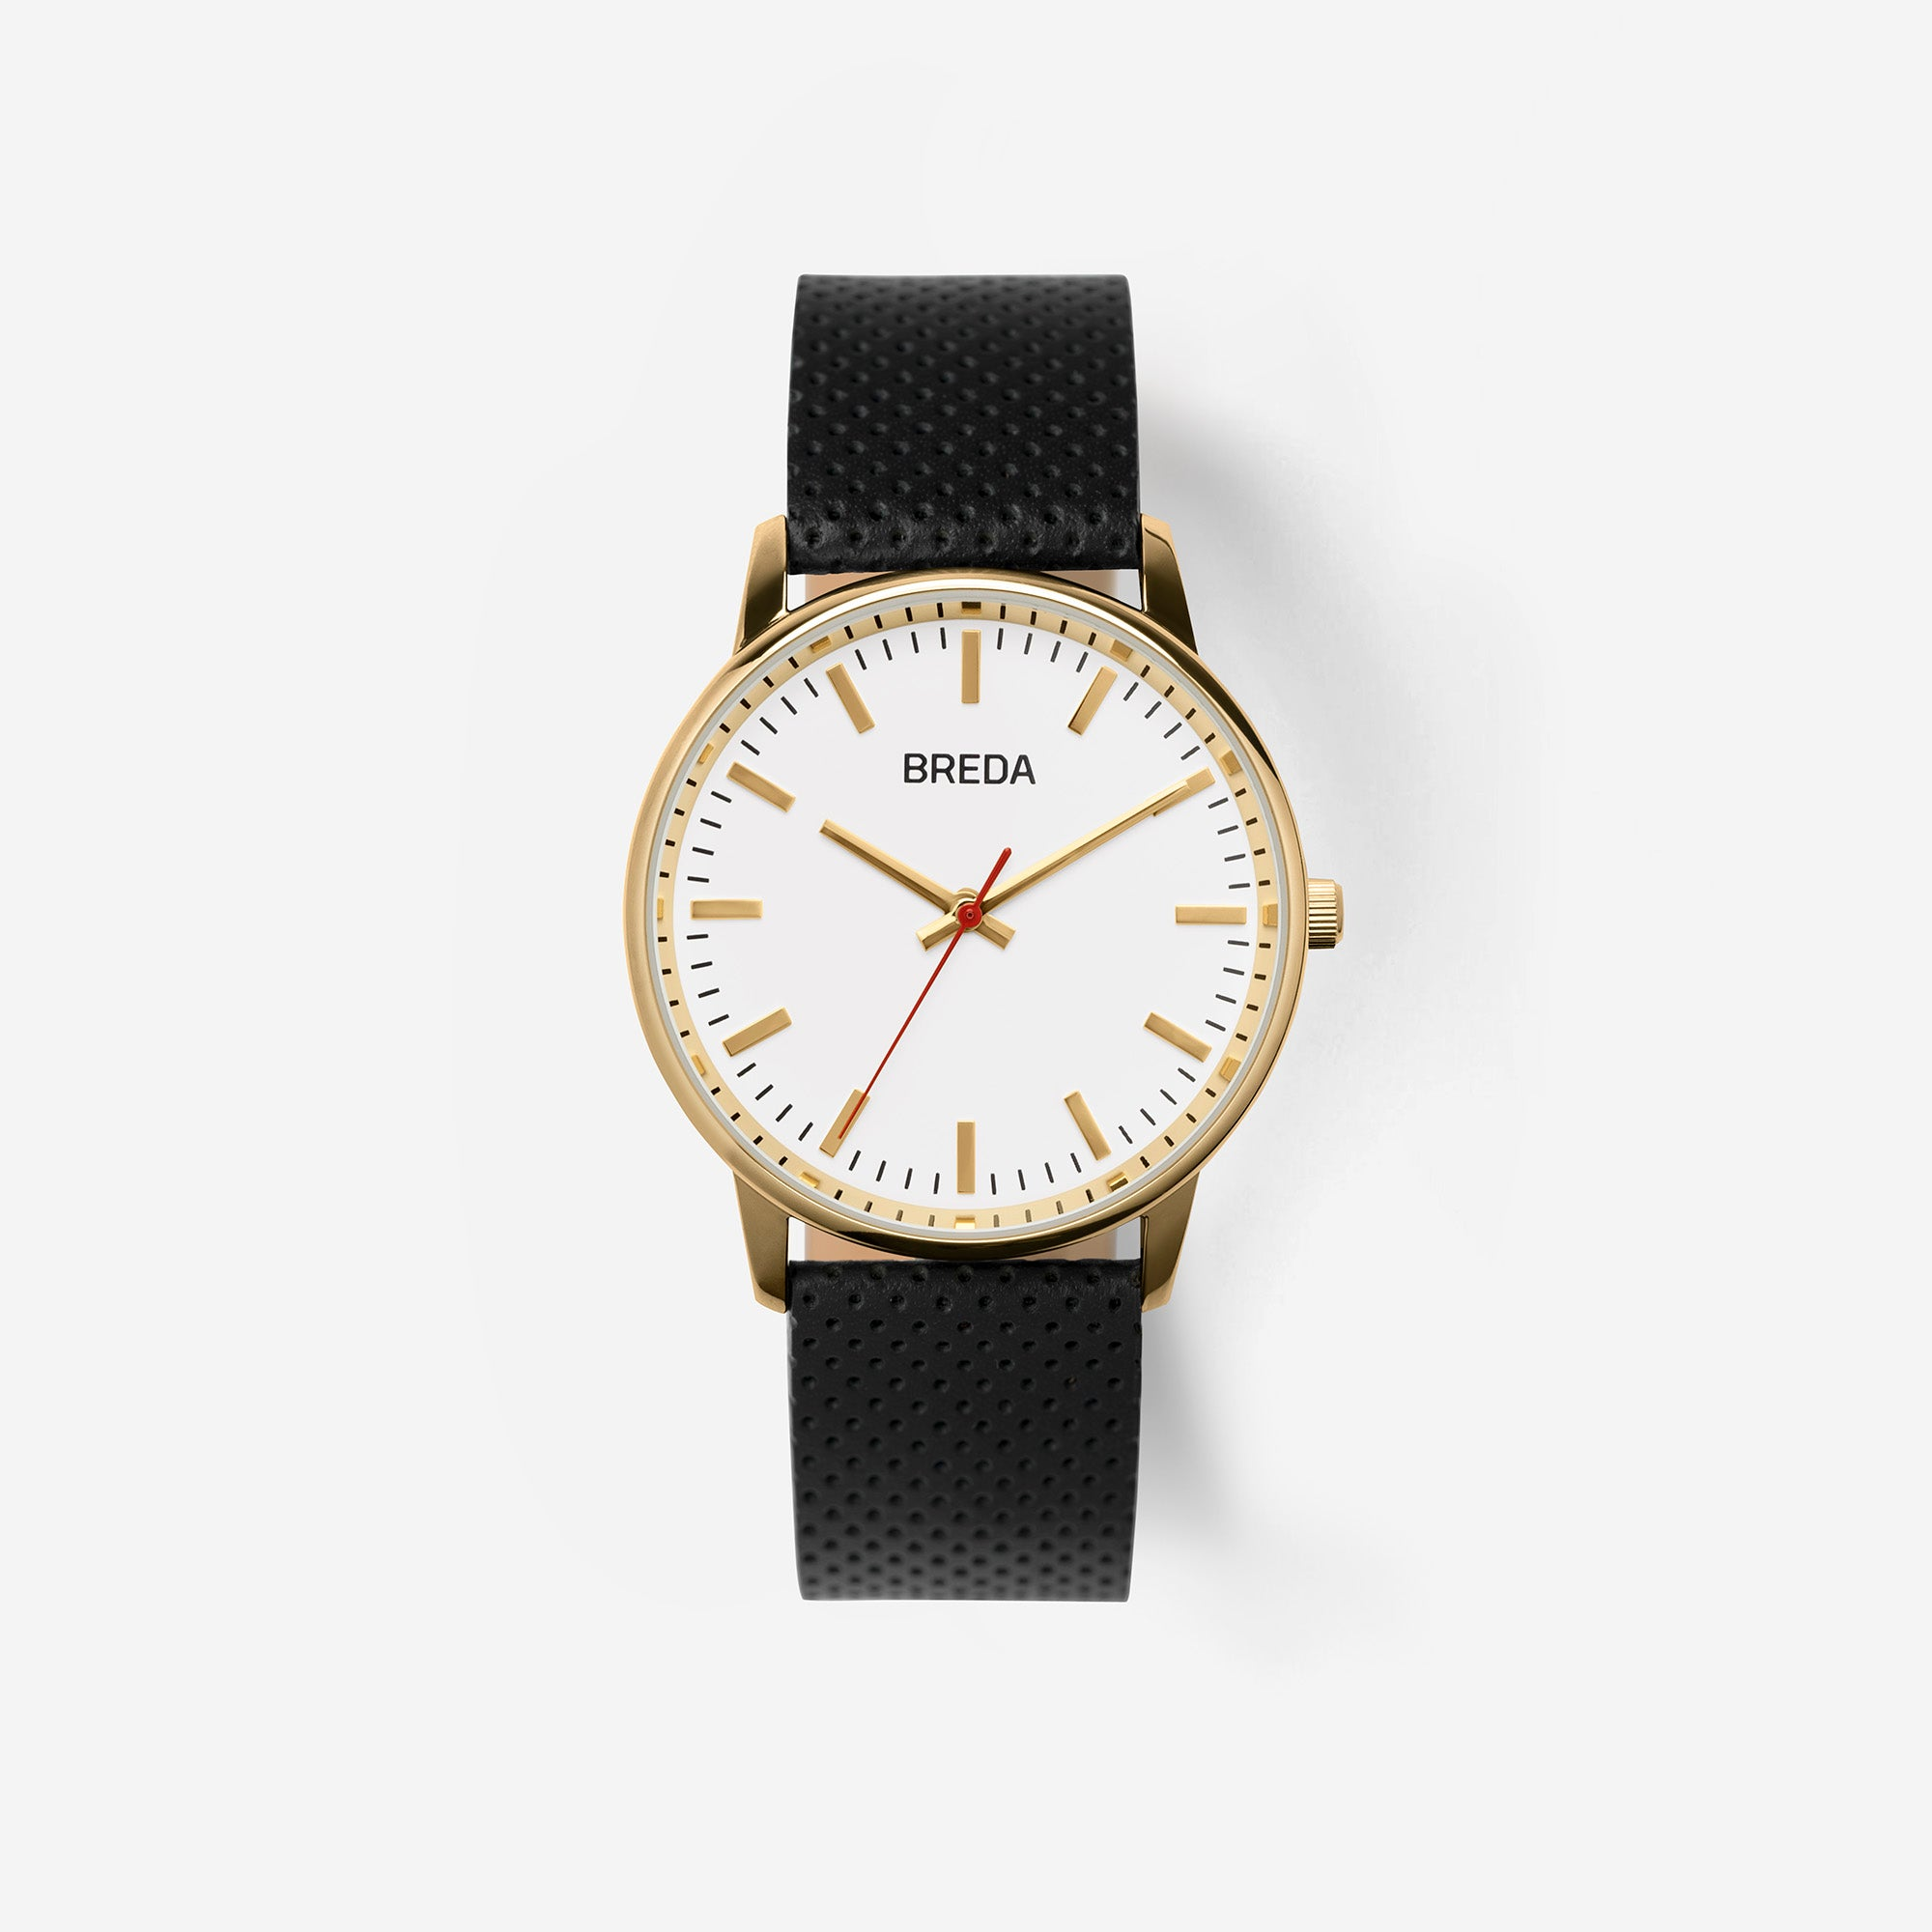 //cdn.shopify.com/s/files/1/0879/6650/products/breda-zapf-1725a-gold-black-leather-watch-front_1024x1024.jpg?v=1542818332